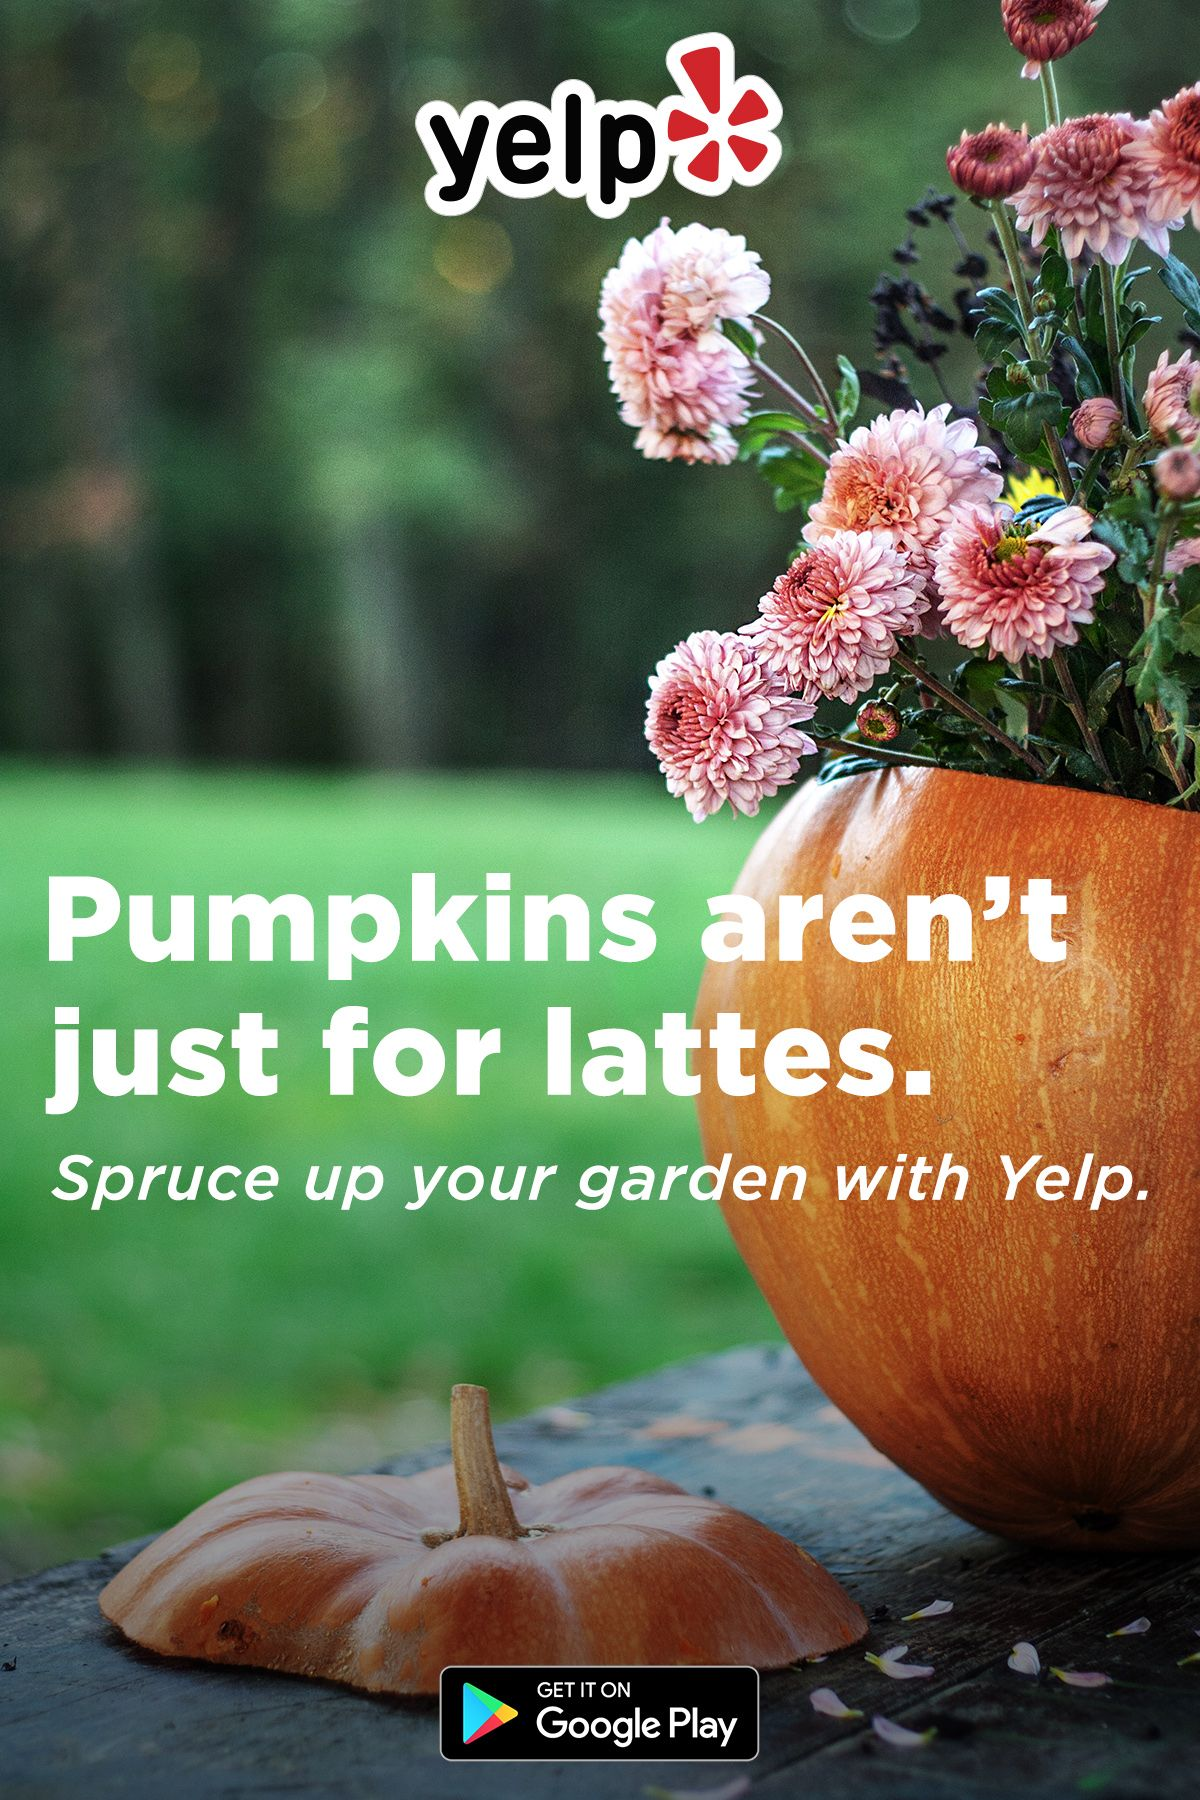 New season, new garden. Download Yelp to find everything